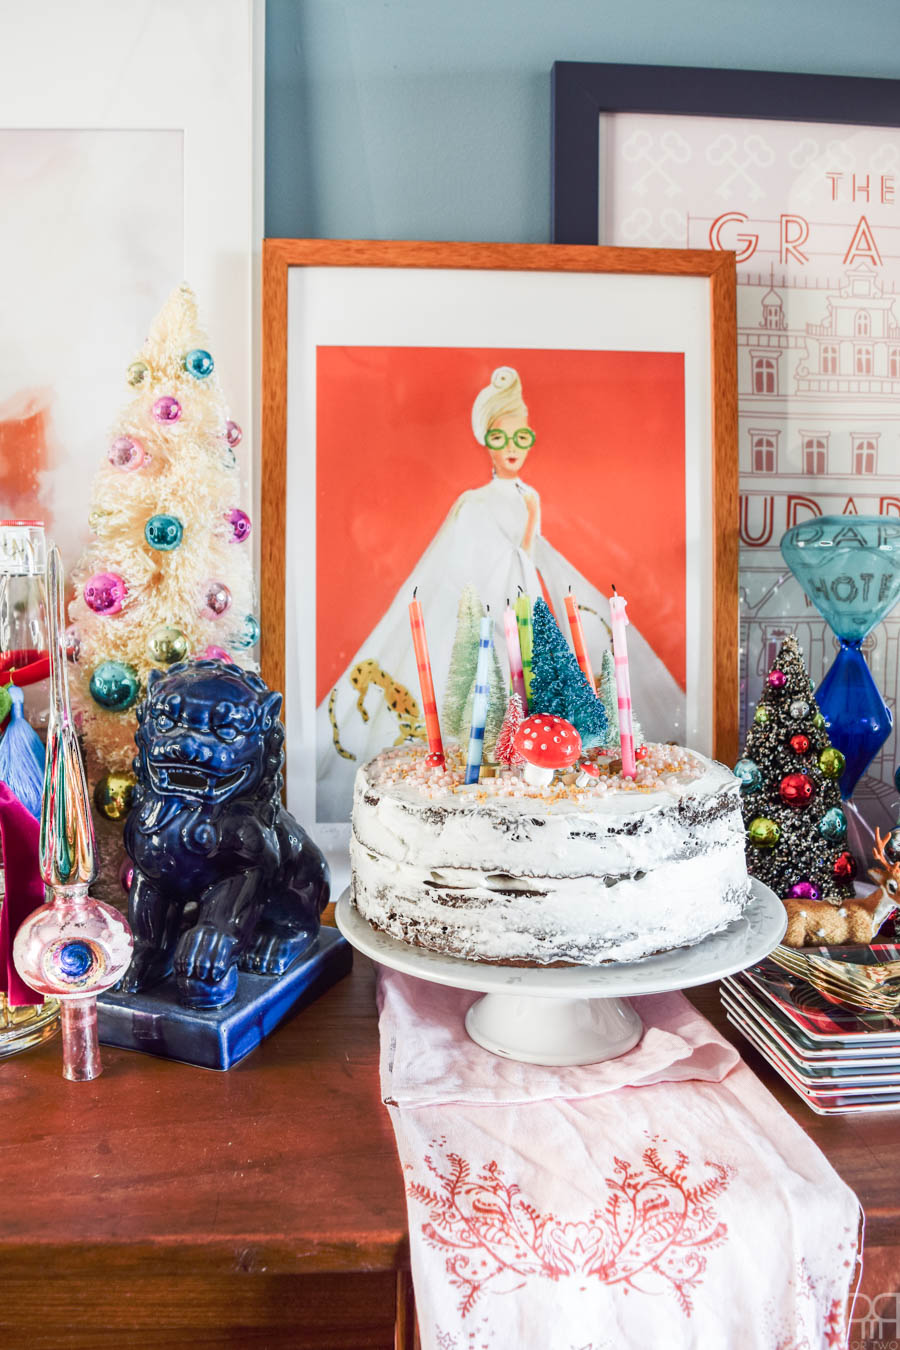 Create a colourful and curated Christmas tablescape with pops of retro and nostalgia. The look is festive and trendy without being overpowering, and my Christmas gift centerpiece is pretty darn impressive.